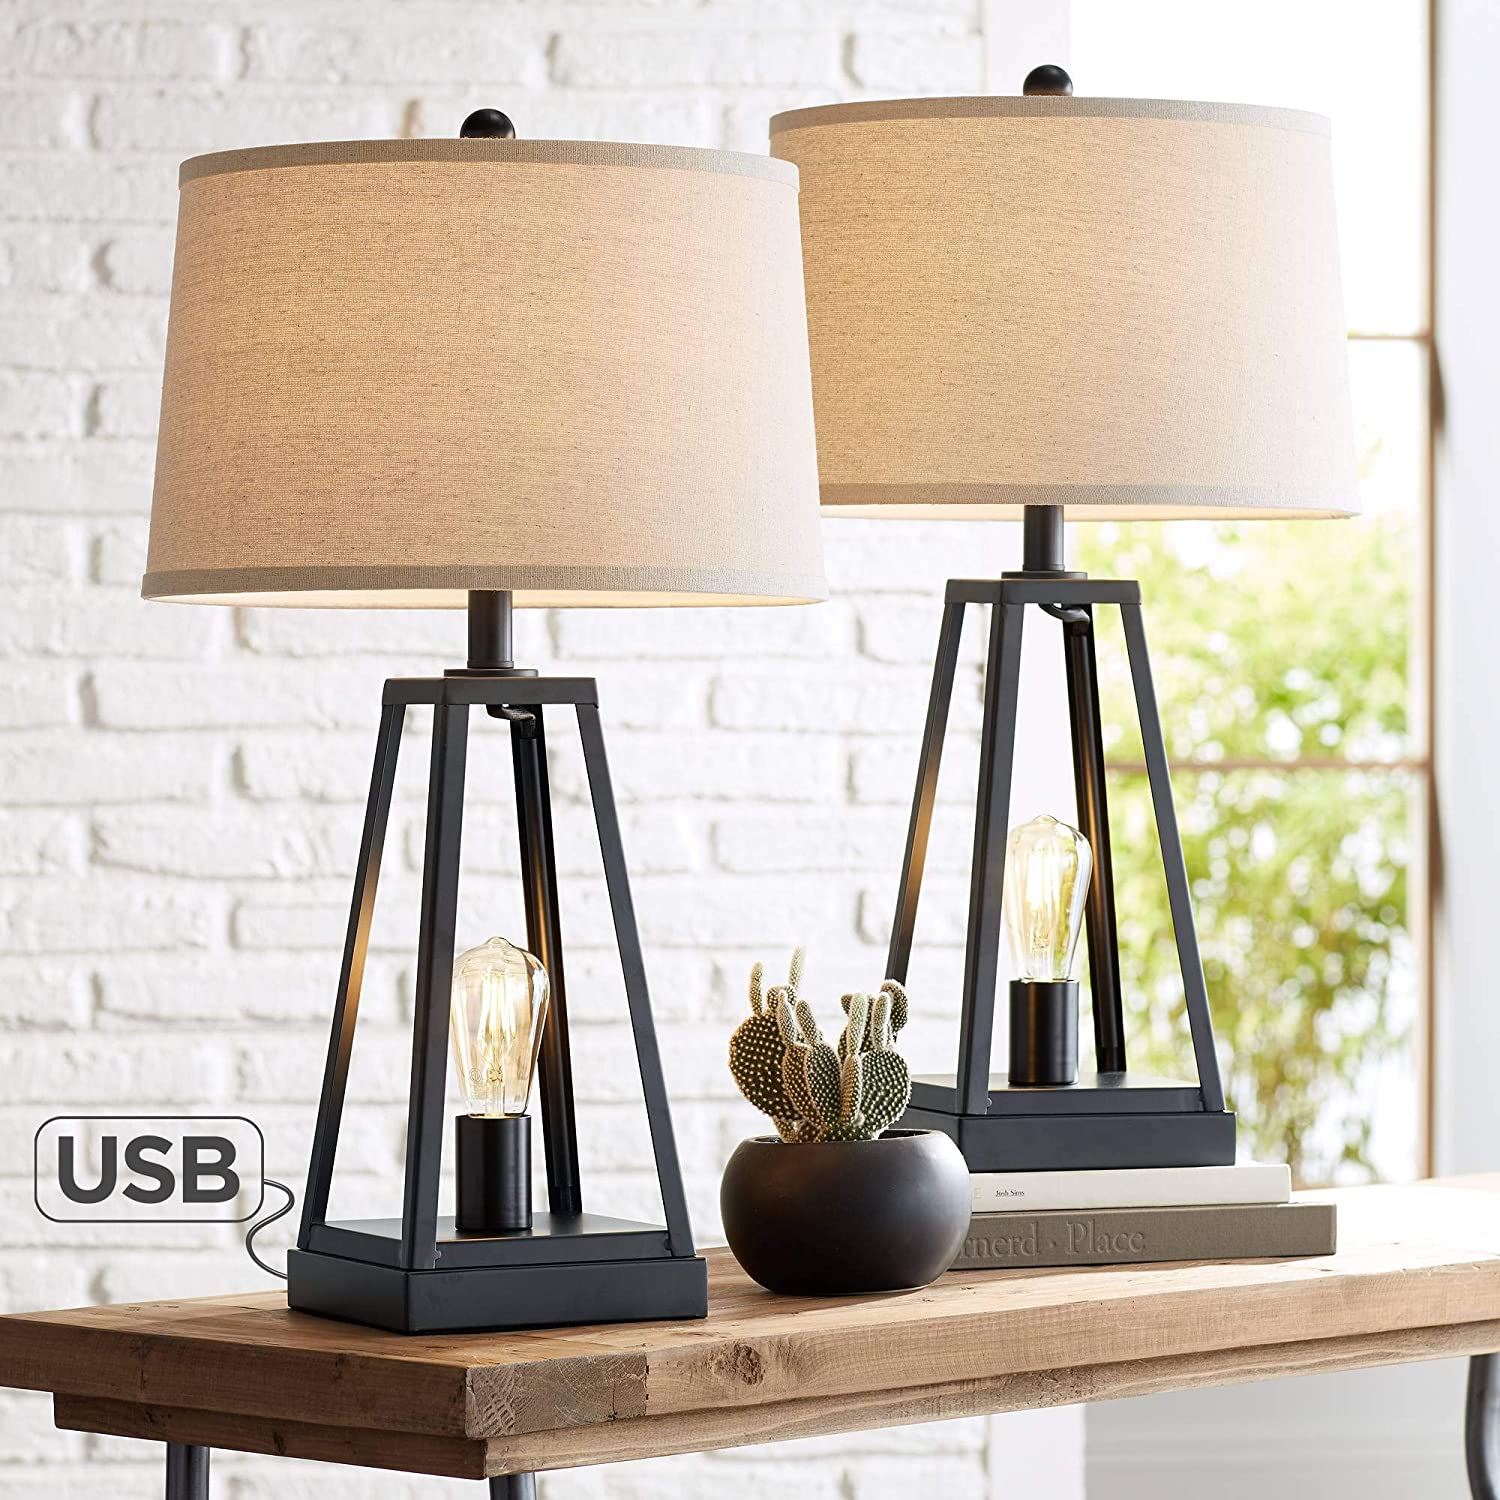 Kacey Industrial Farmhouse Table Lamps Set Of 2 With Usb Charging Port Nightlight Led Open Column Dark Metal Oatmeal Fabric Drum Shade For Living Room Bedroom Bedside Nightstand Franklin Iron Works